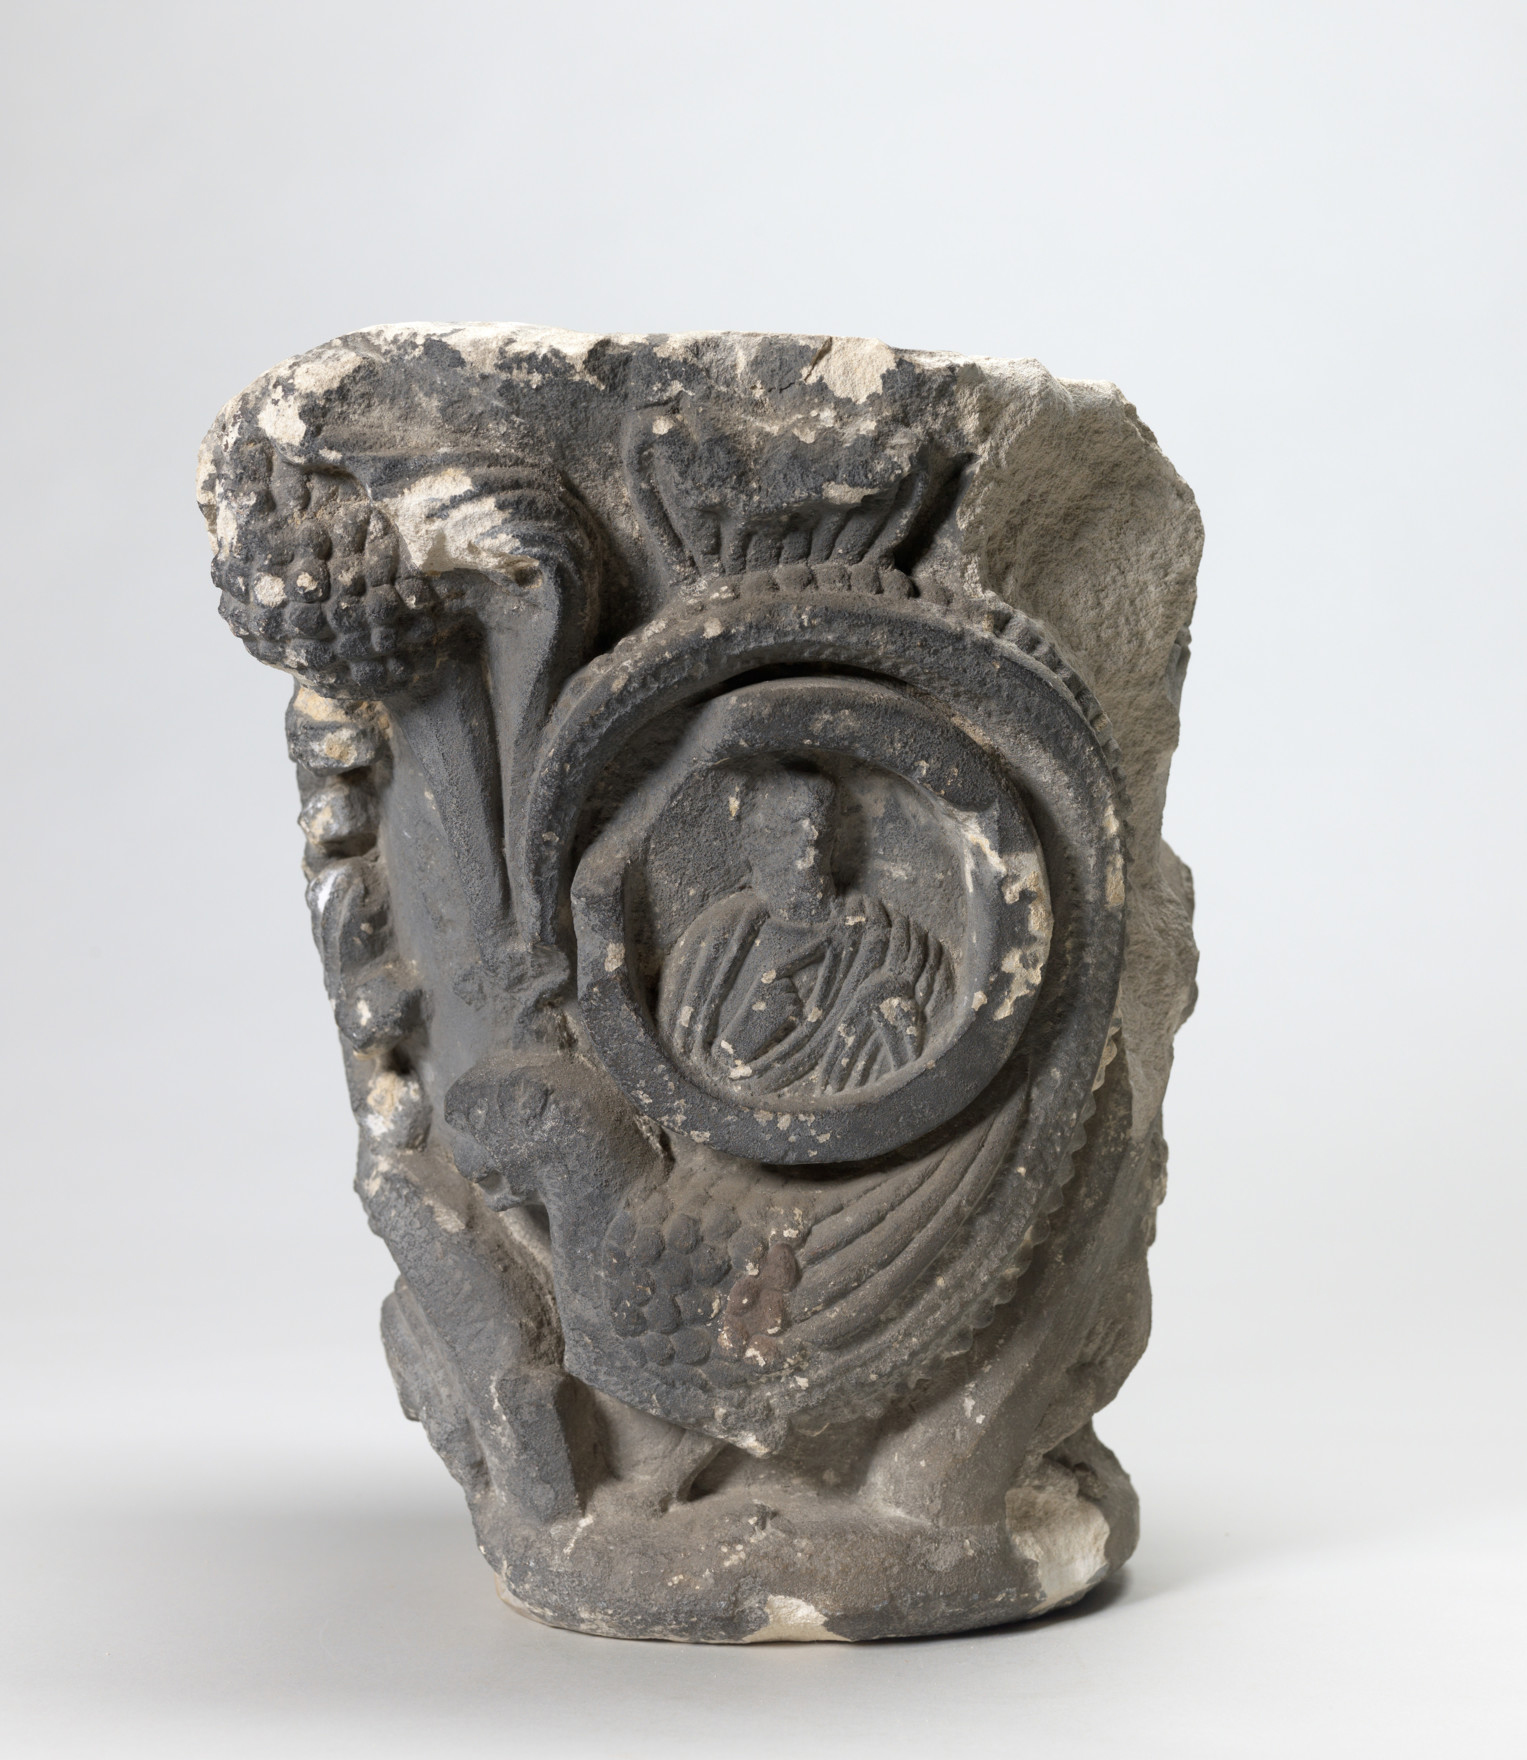 Romanesque Capital. French, 12th century. Limestone. Gift of James J. Rorimer, 49.5